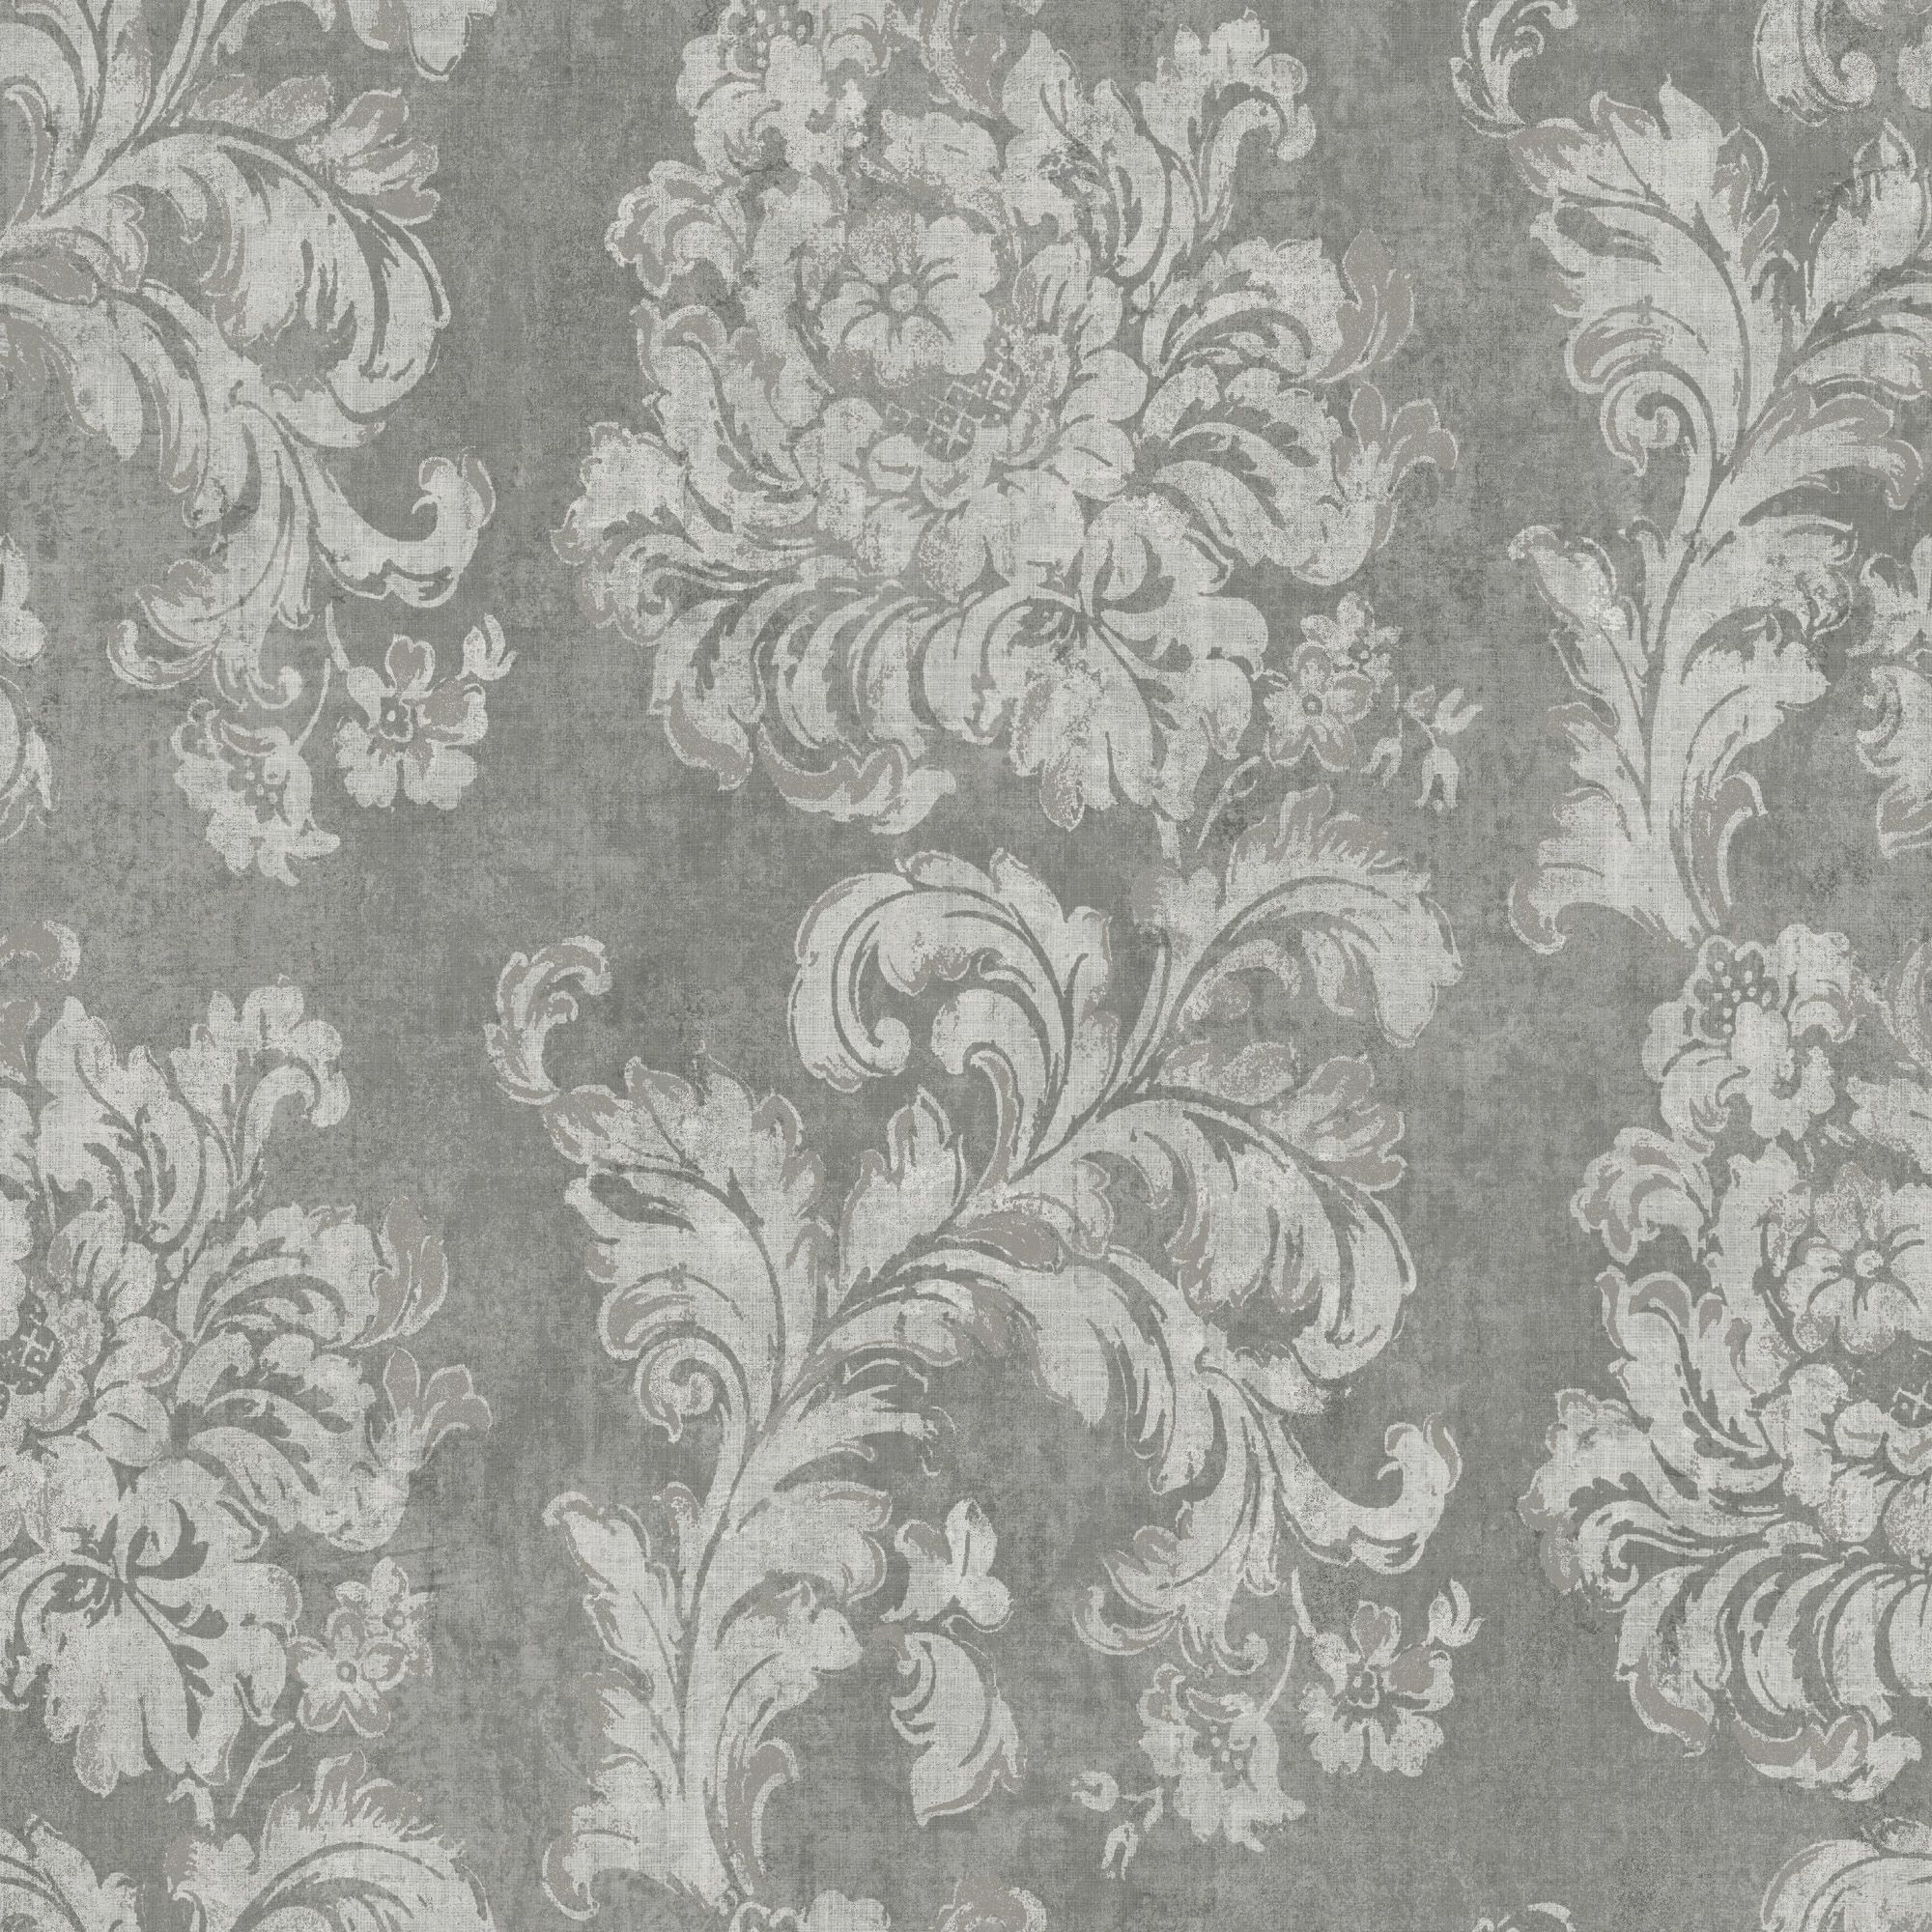 Gold Decadent Trail Metallic Effect Light Grey Wallpaper - Departments